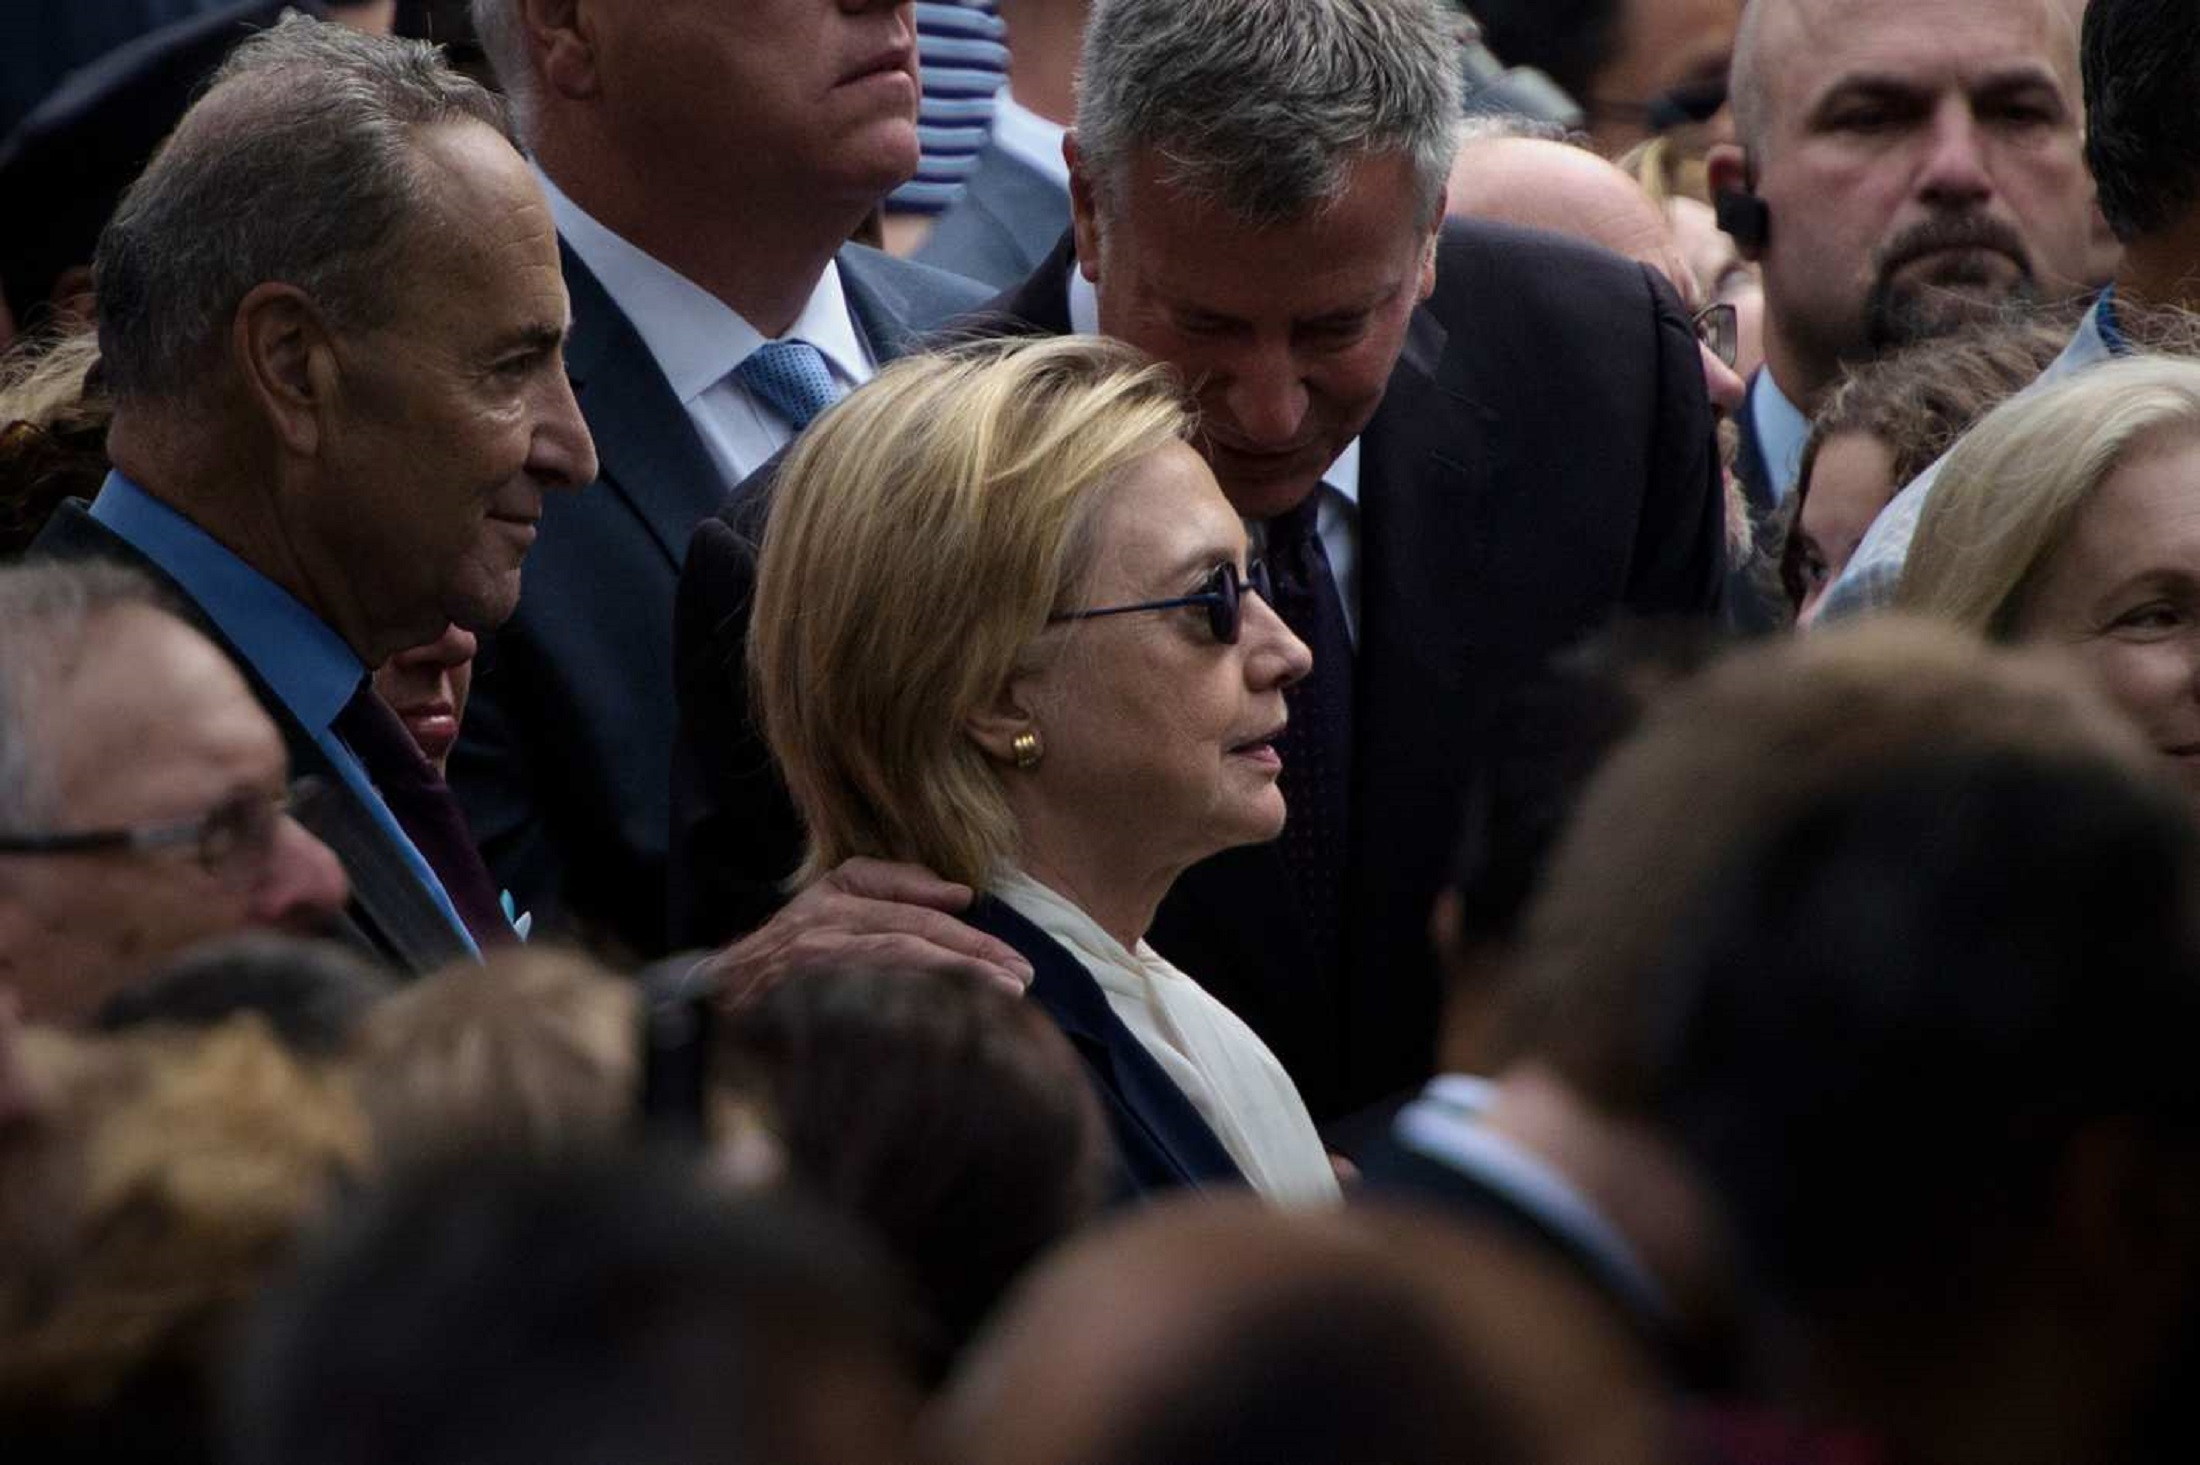 Hillary Clinton Leaves 9/11 Event Early; Has Pneumonia